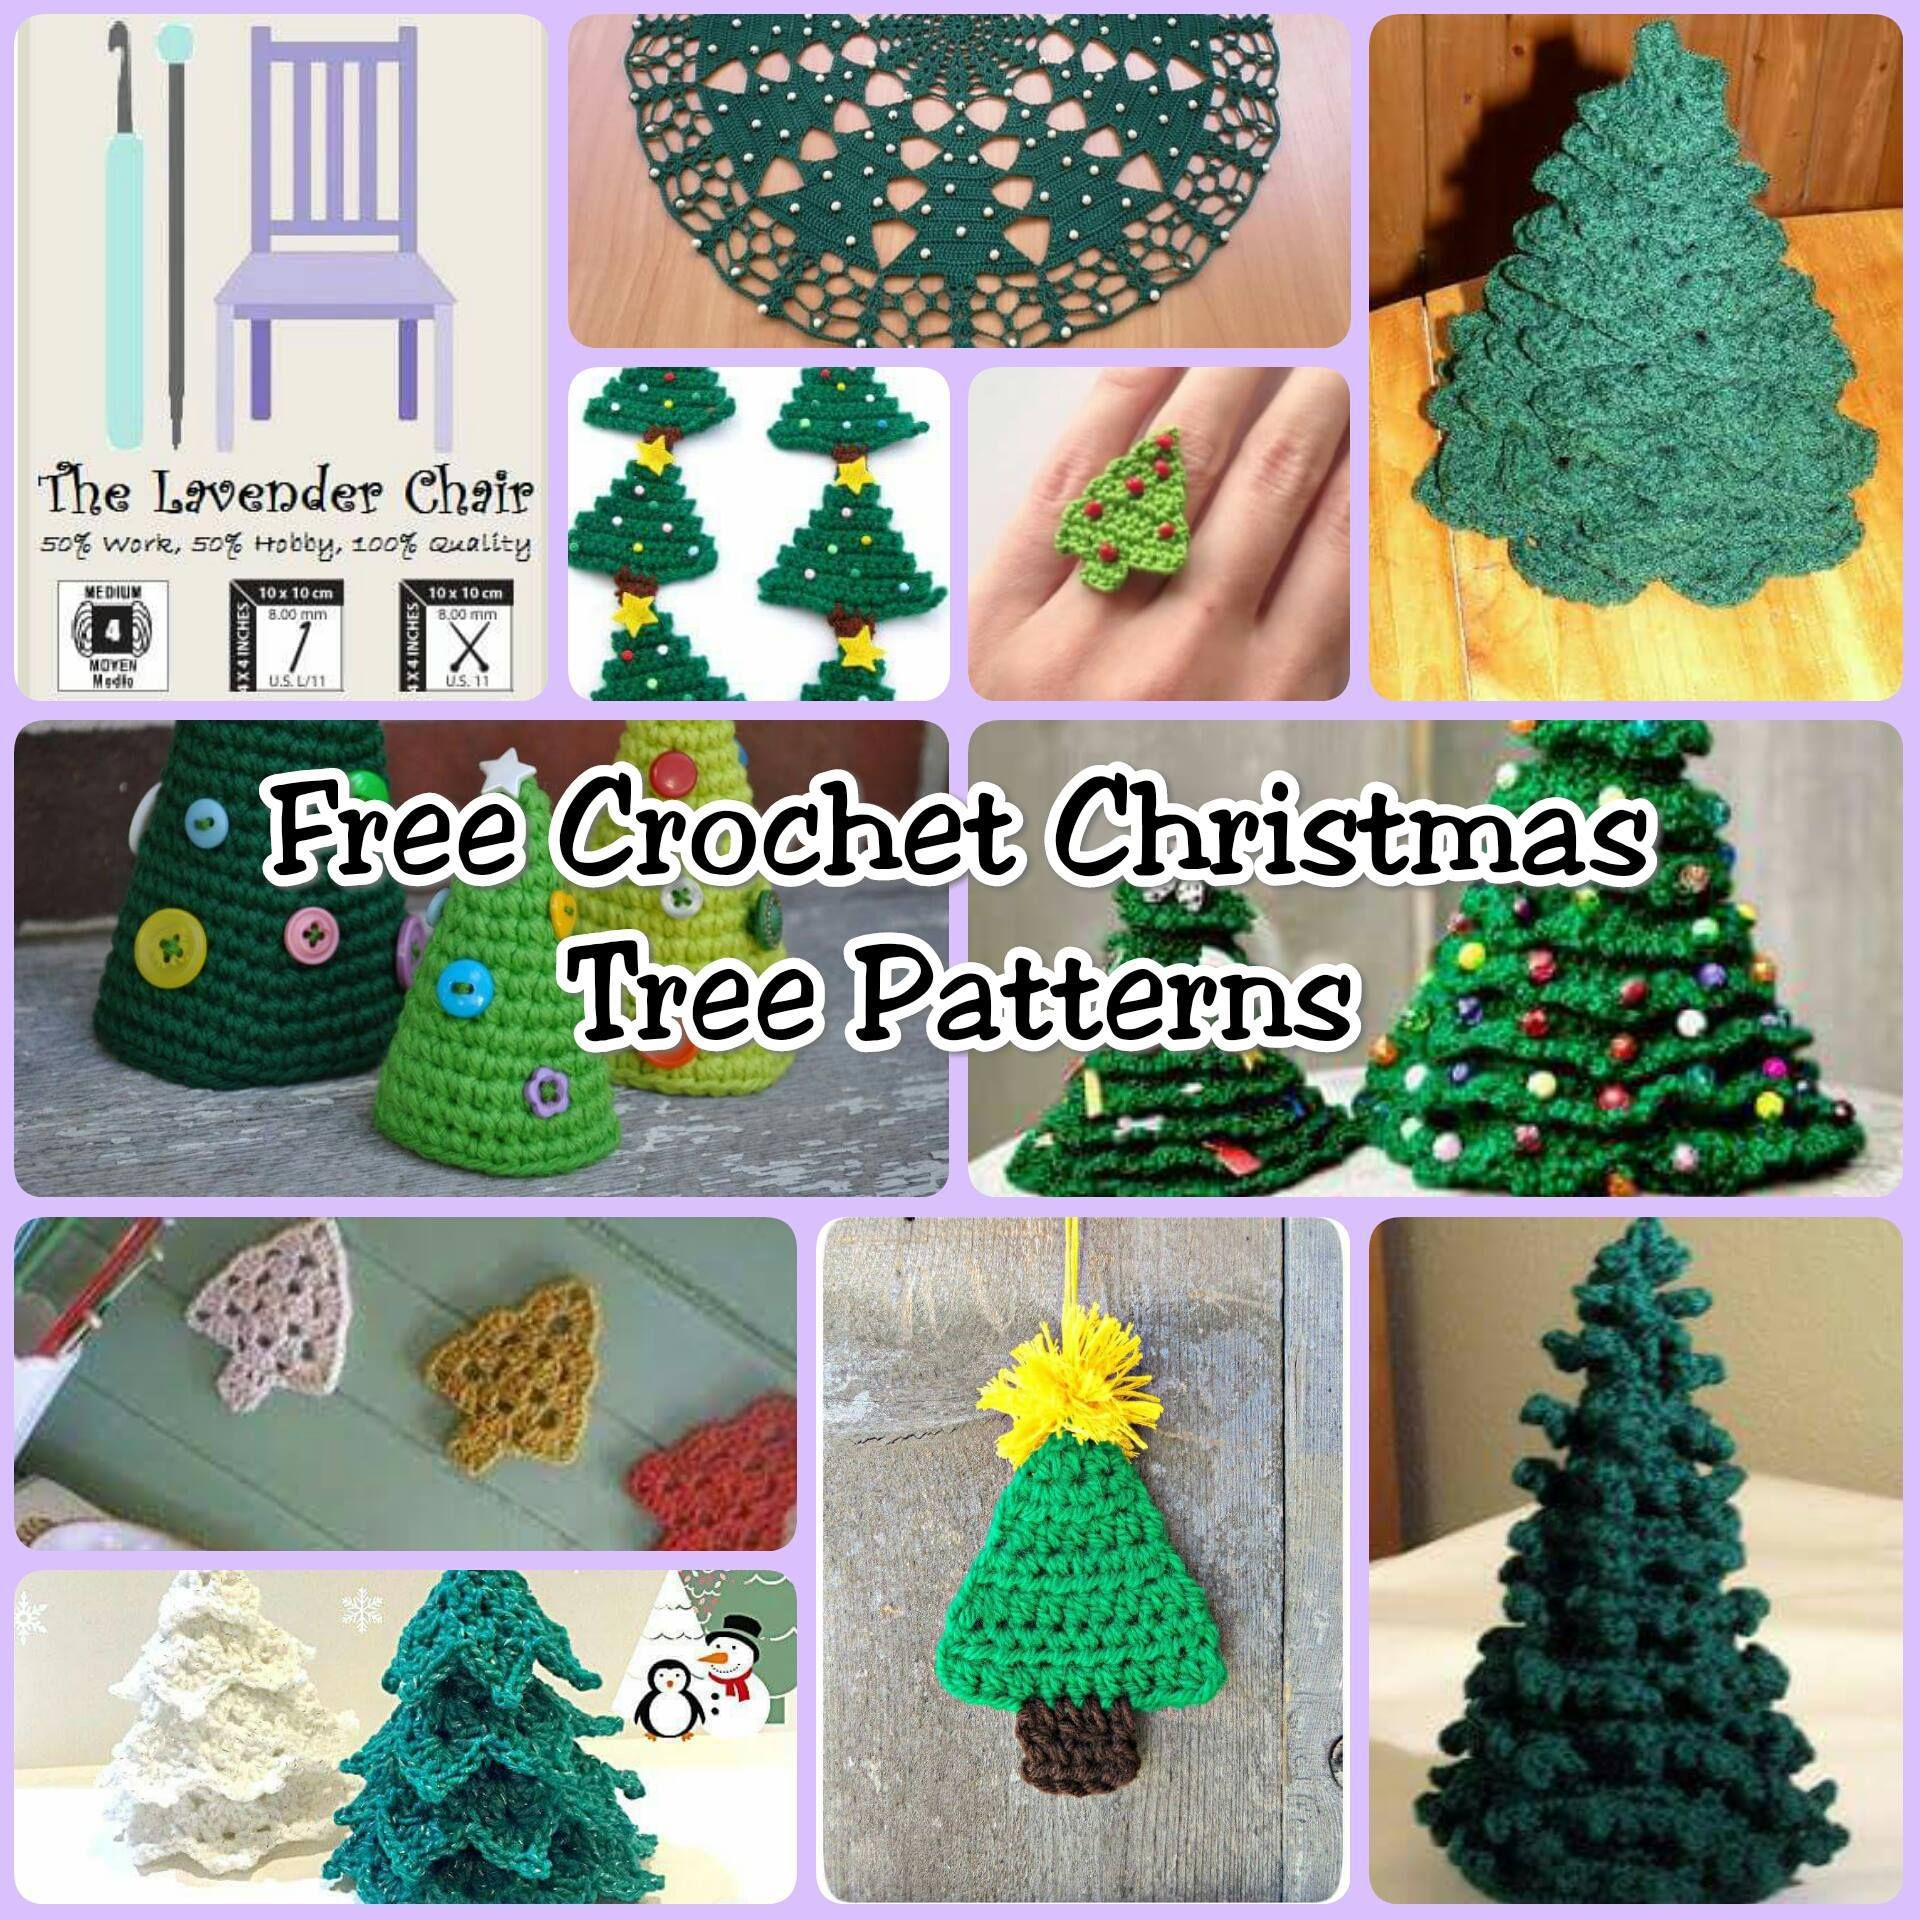 Free crochet christmas tree patterns the lavender chair whoot free crochet christmas tree patterns the lavender chair bankloansurffo Choice Image